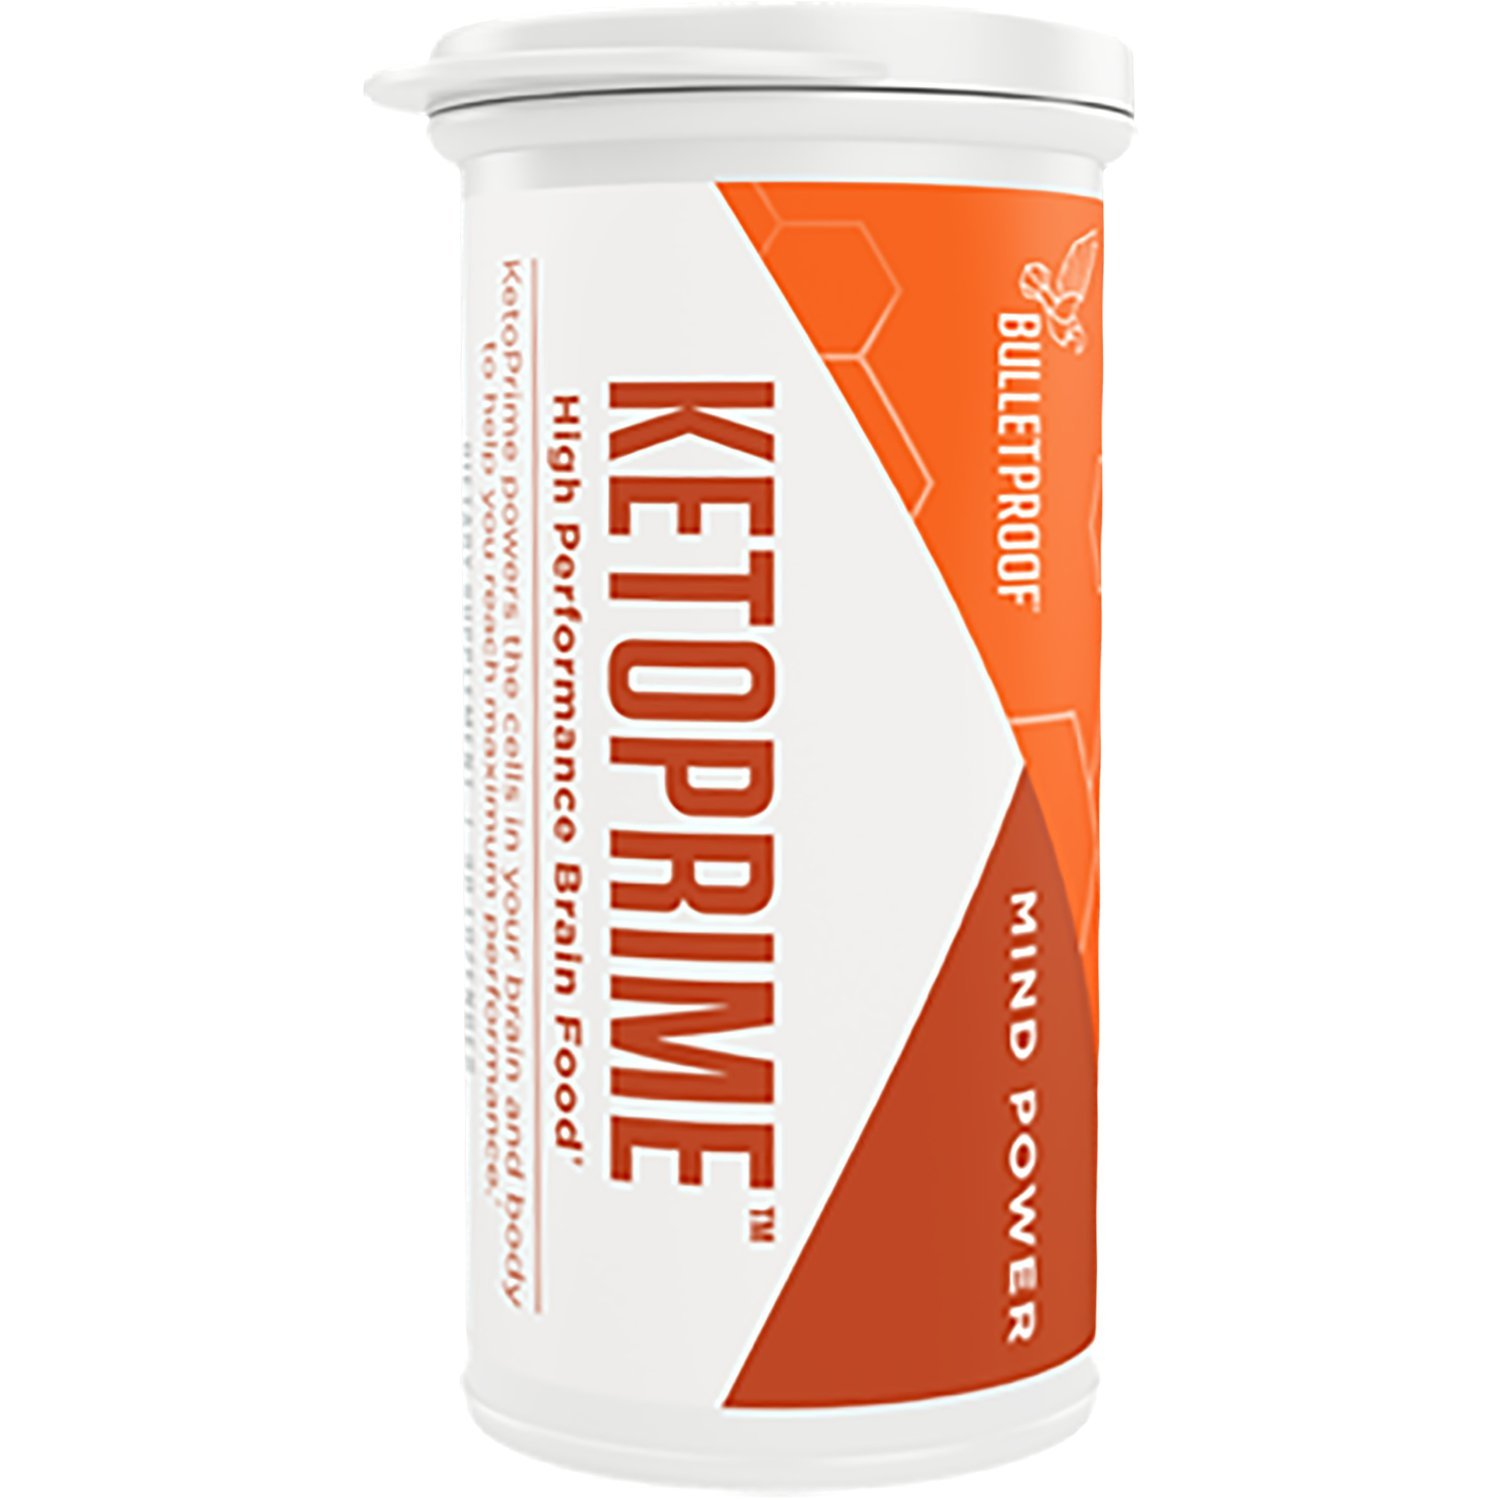 Bulletproof KetoPrime, High Performance Brain Food (30 Count)